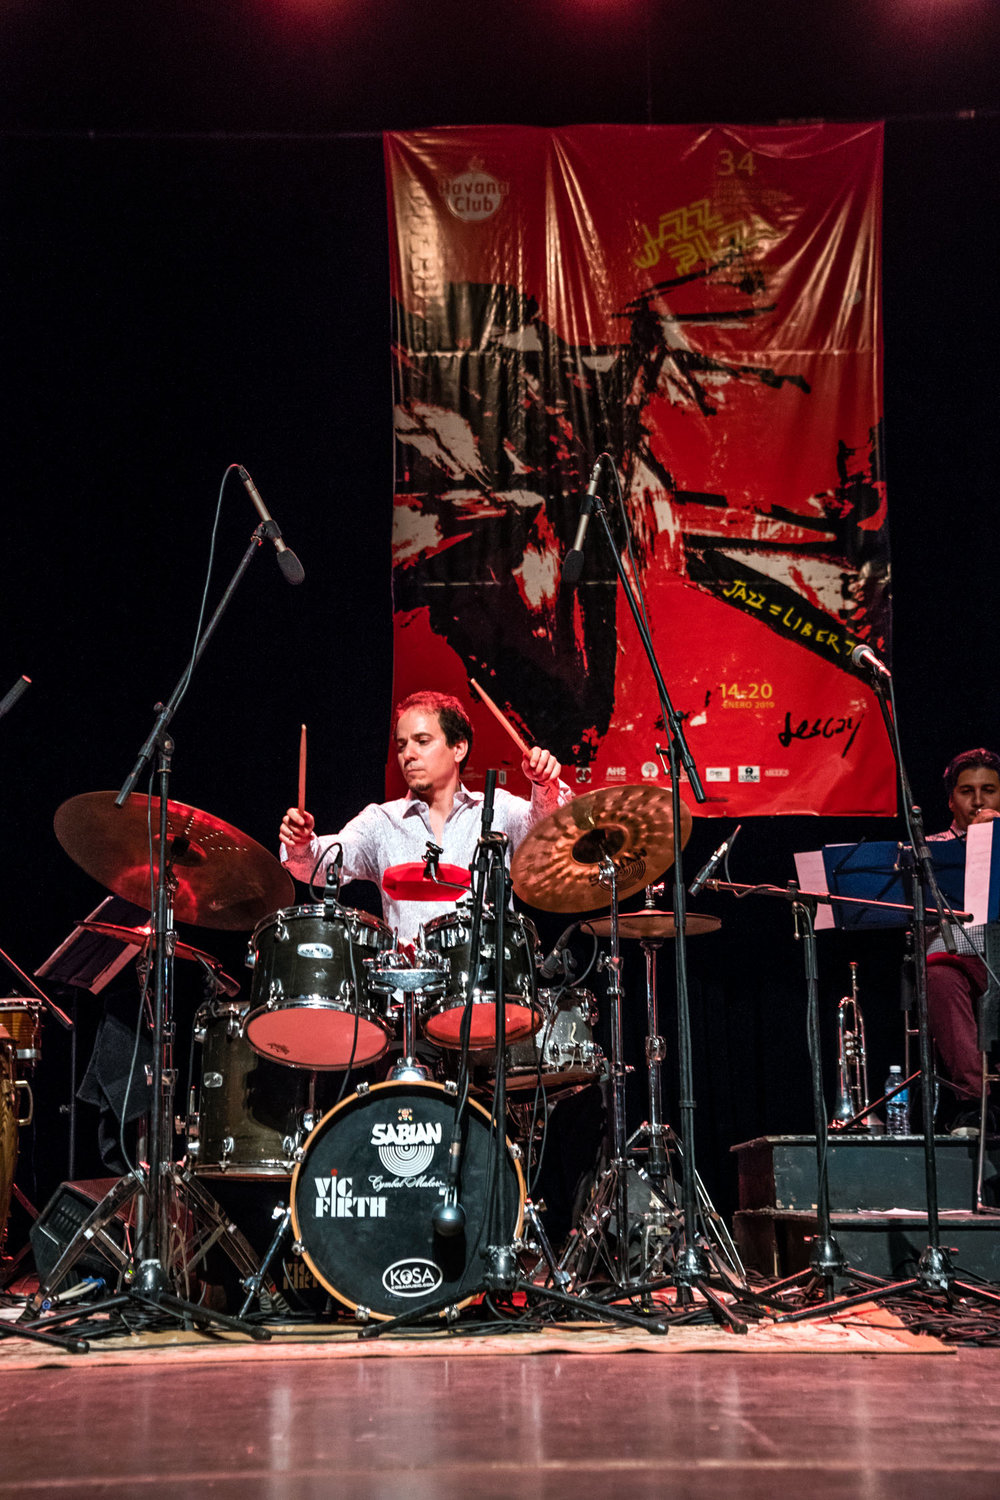 Dafnis Prieto performing at Teatro Mella, Havana, Cuba, January 2019 (Photo by David Garten)